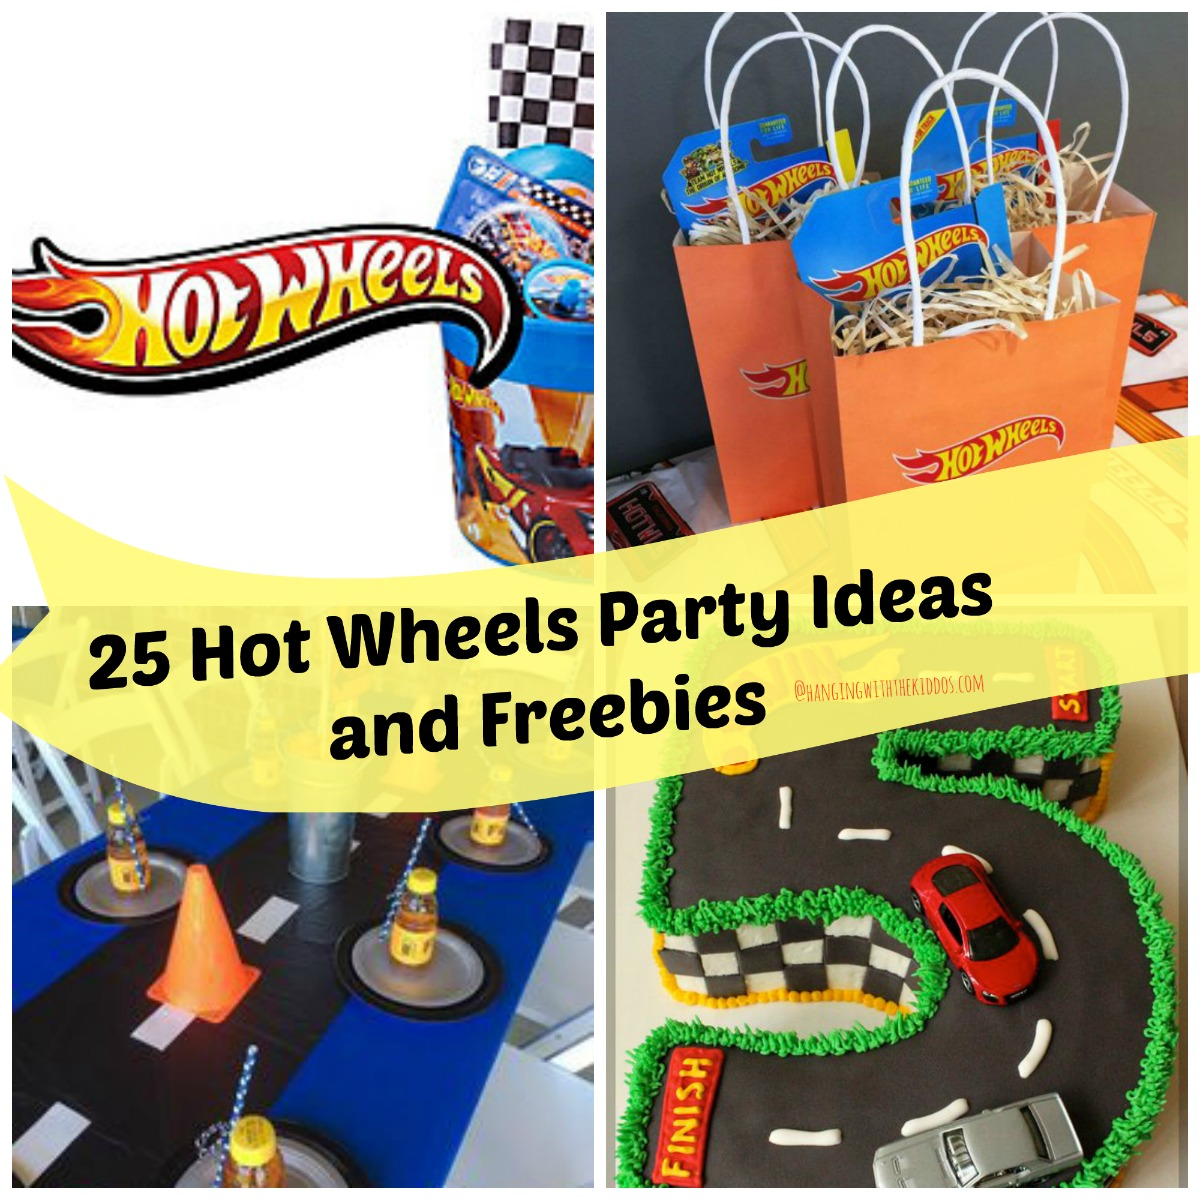 25 Hot Wheels Party Ideas and Freebies